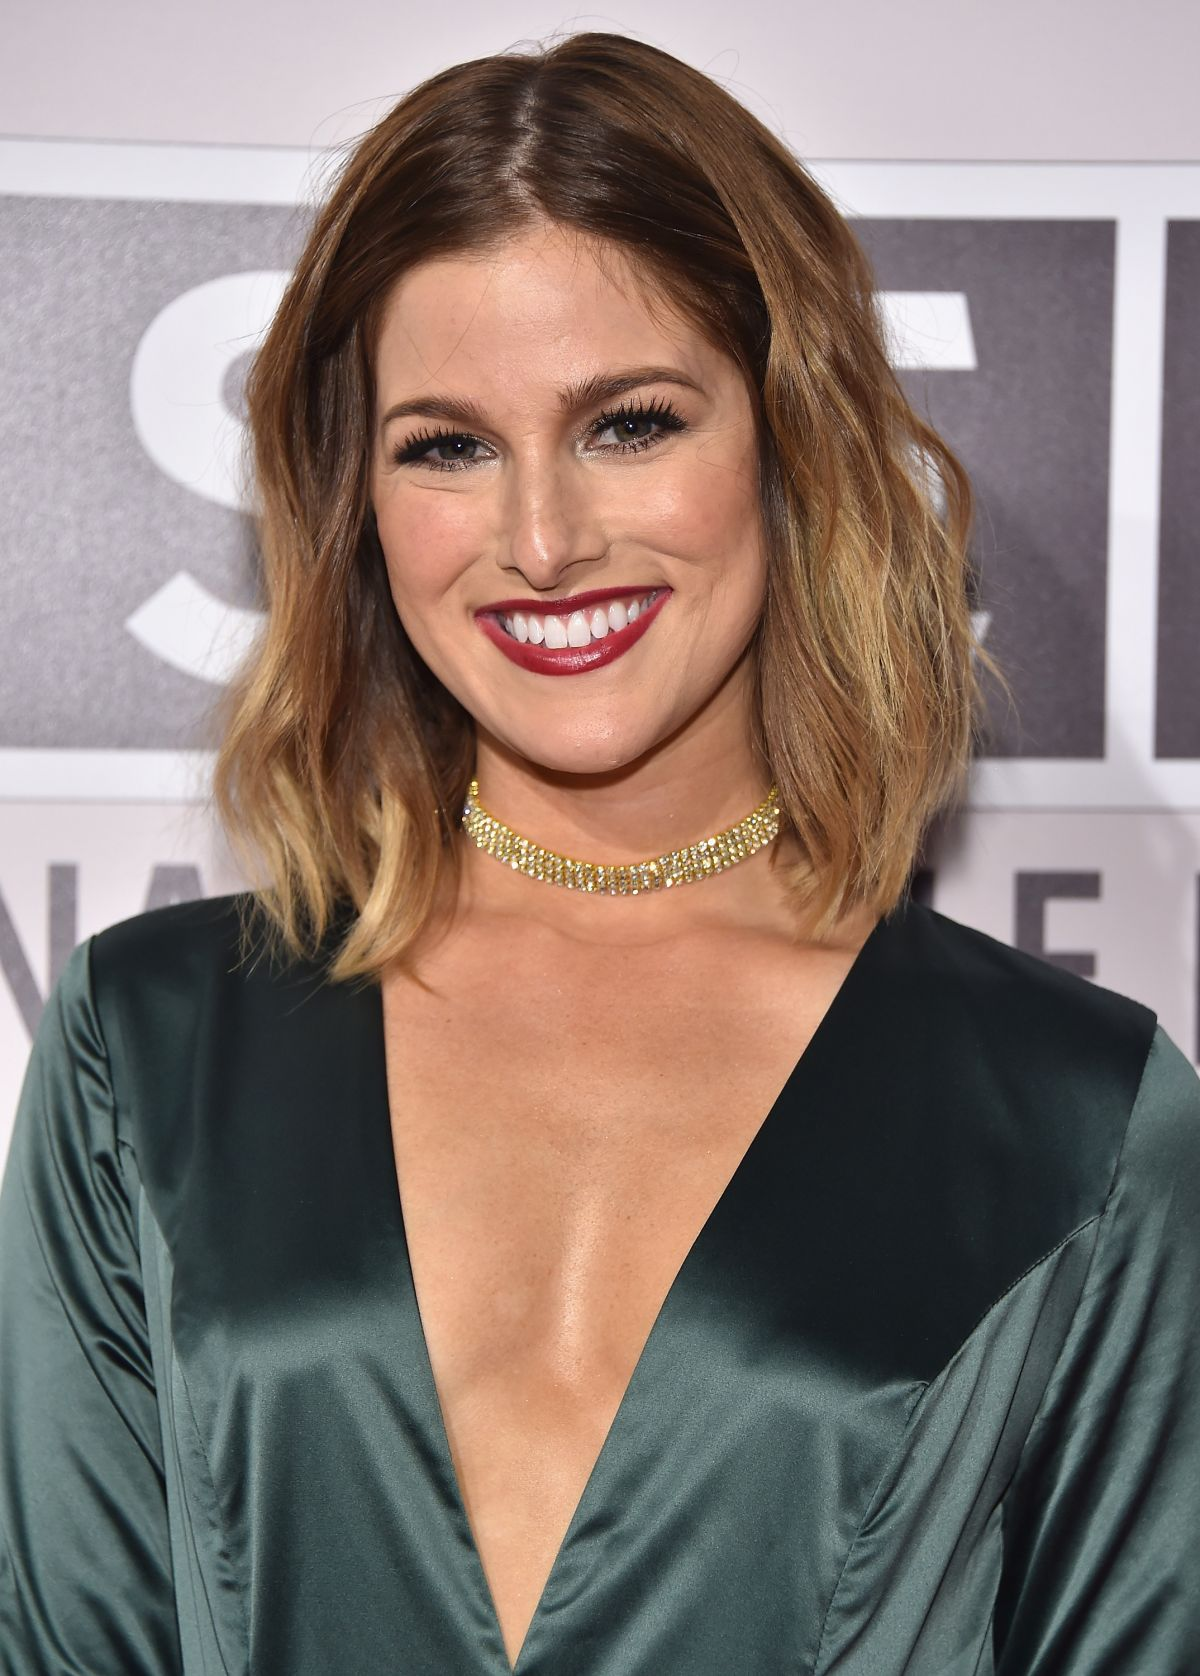 CASSADEE POPE at Sesac Nashville Music Awards at Country Music Hall of Fame and Museum in Nashville 10/30/2016